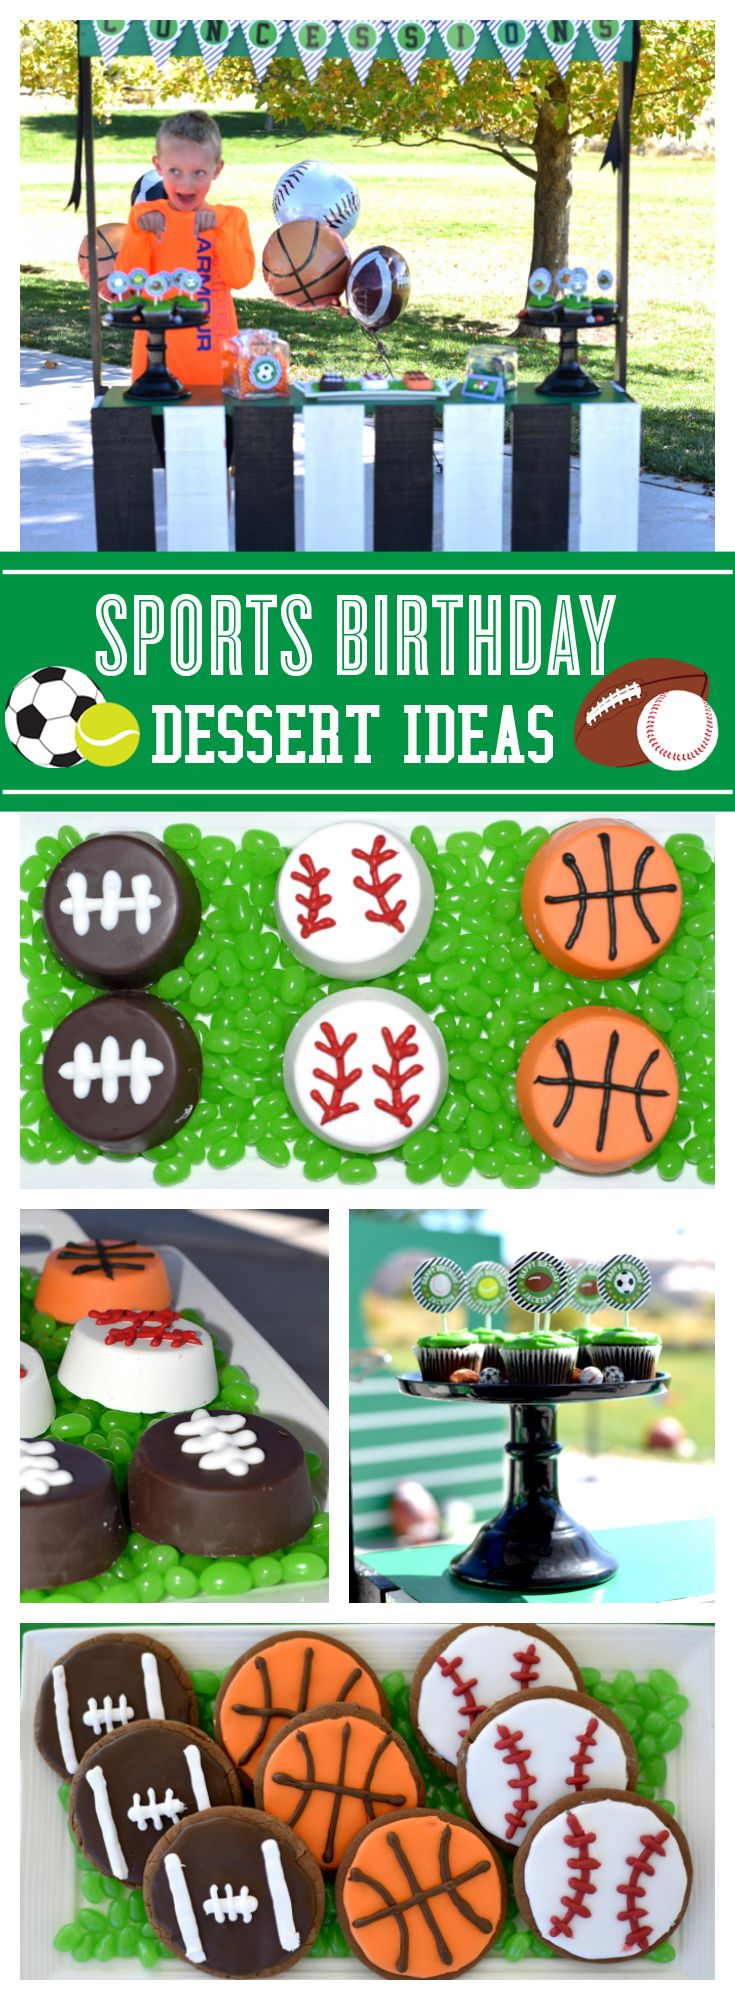 The sweetest Sports birthday dessert ideas!